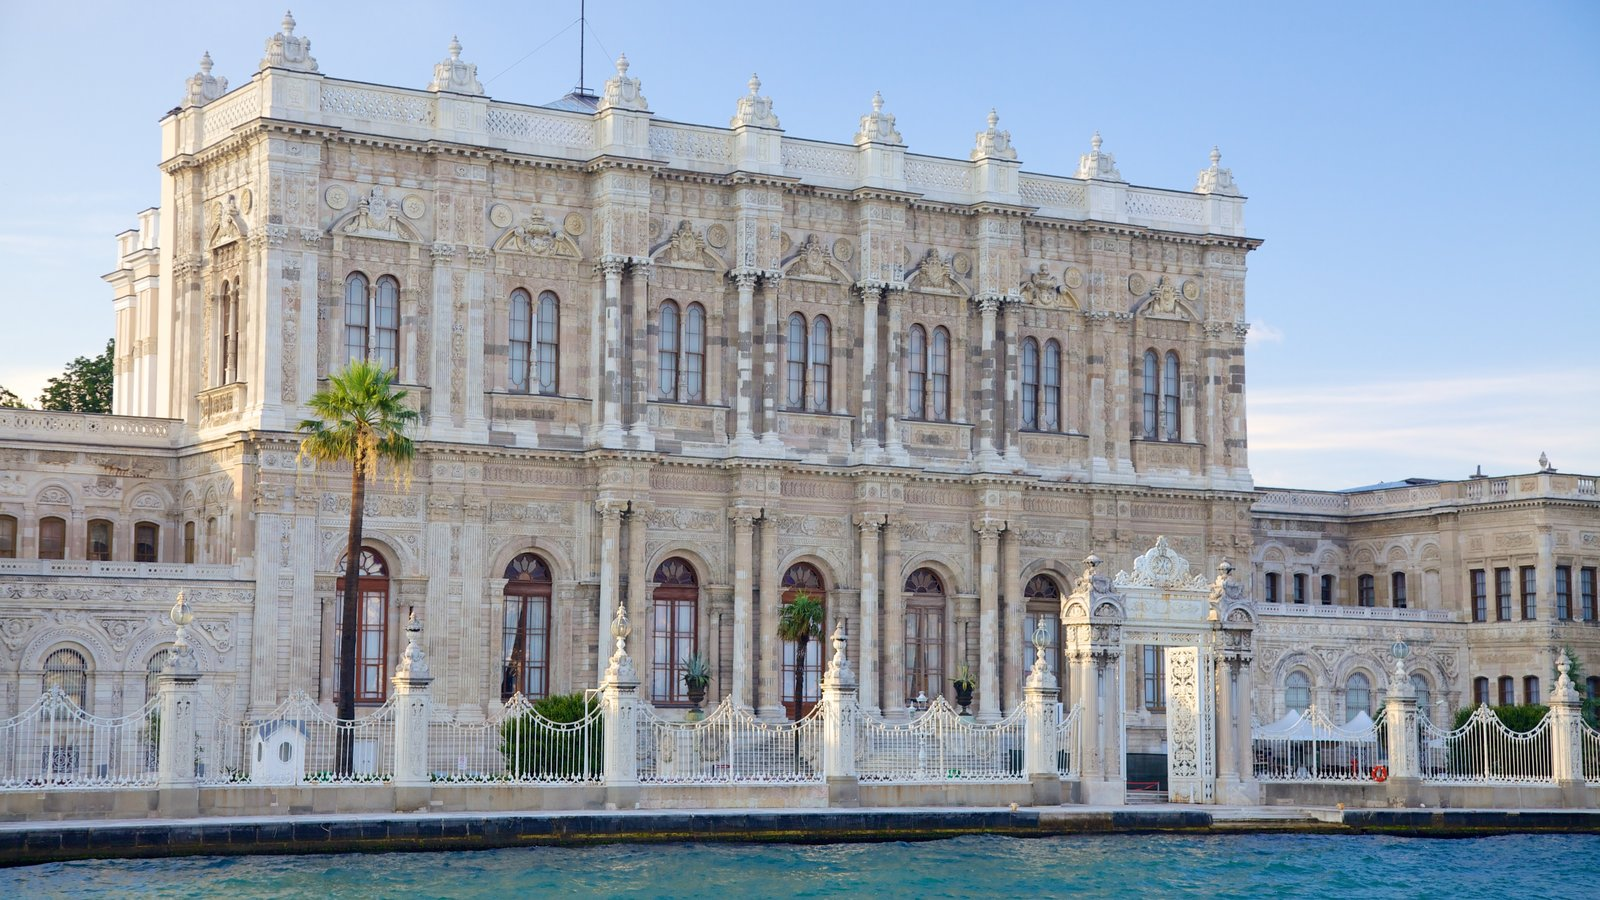 Dolmabahce Palace featuring a castle and heritage architecture